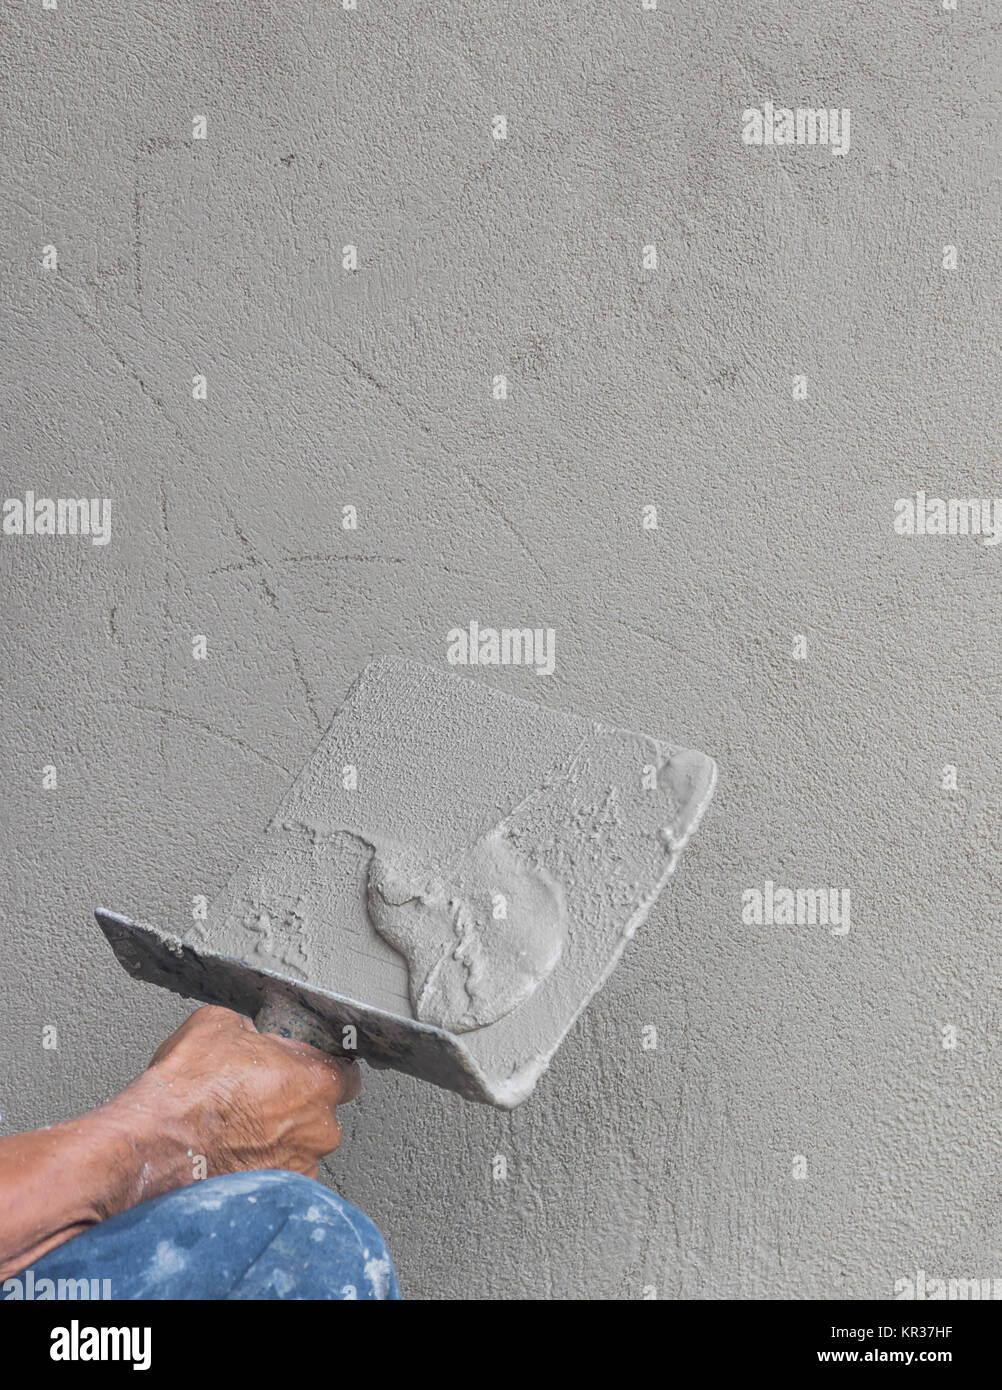 Builder worker plastering concrete Stock Photo